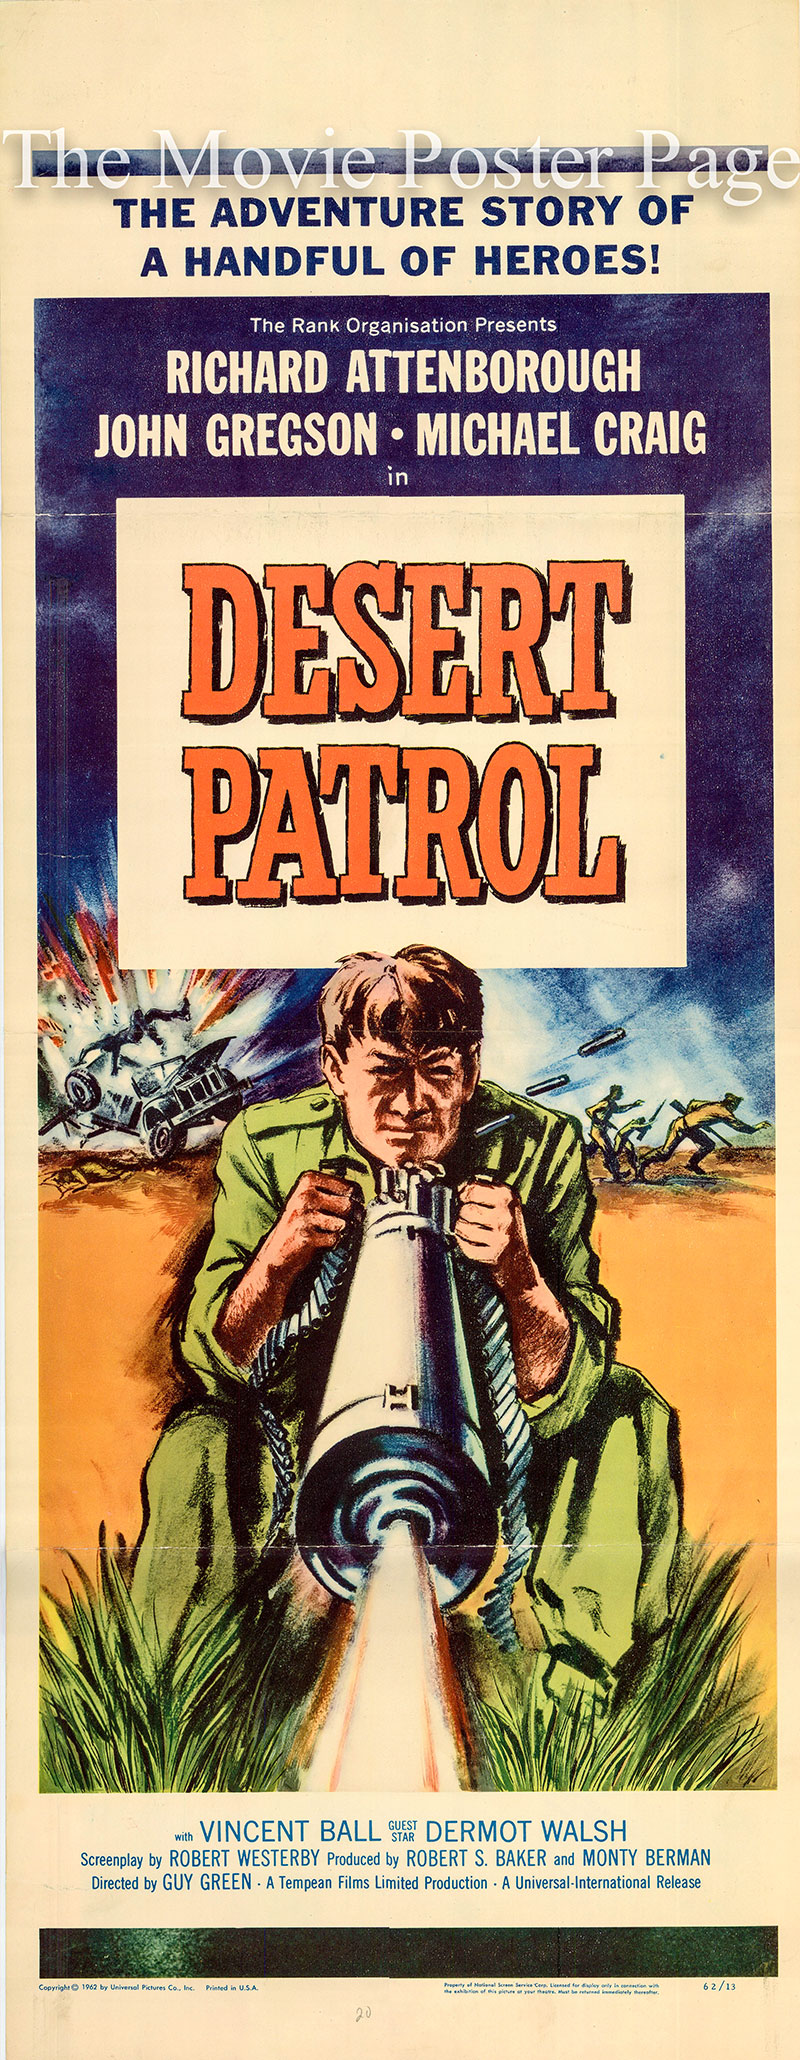 Pictured is a US insert poster for the 1962 Guy Green film Desert Patrol starring Richard Attenborough.